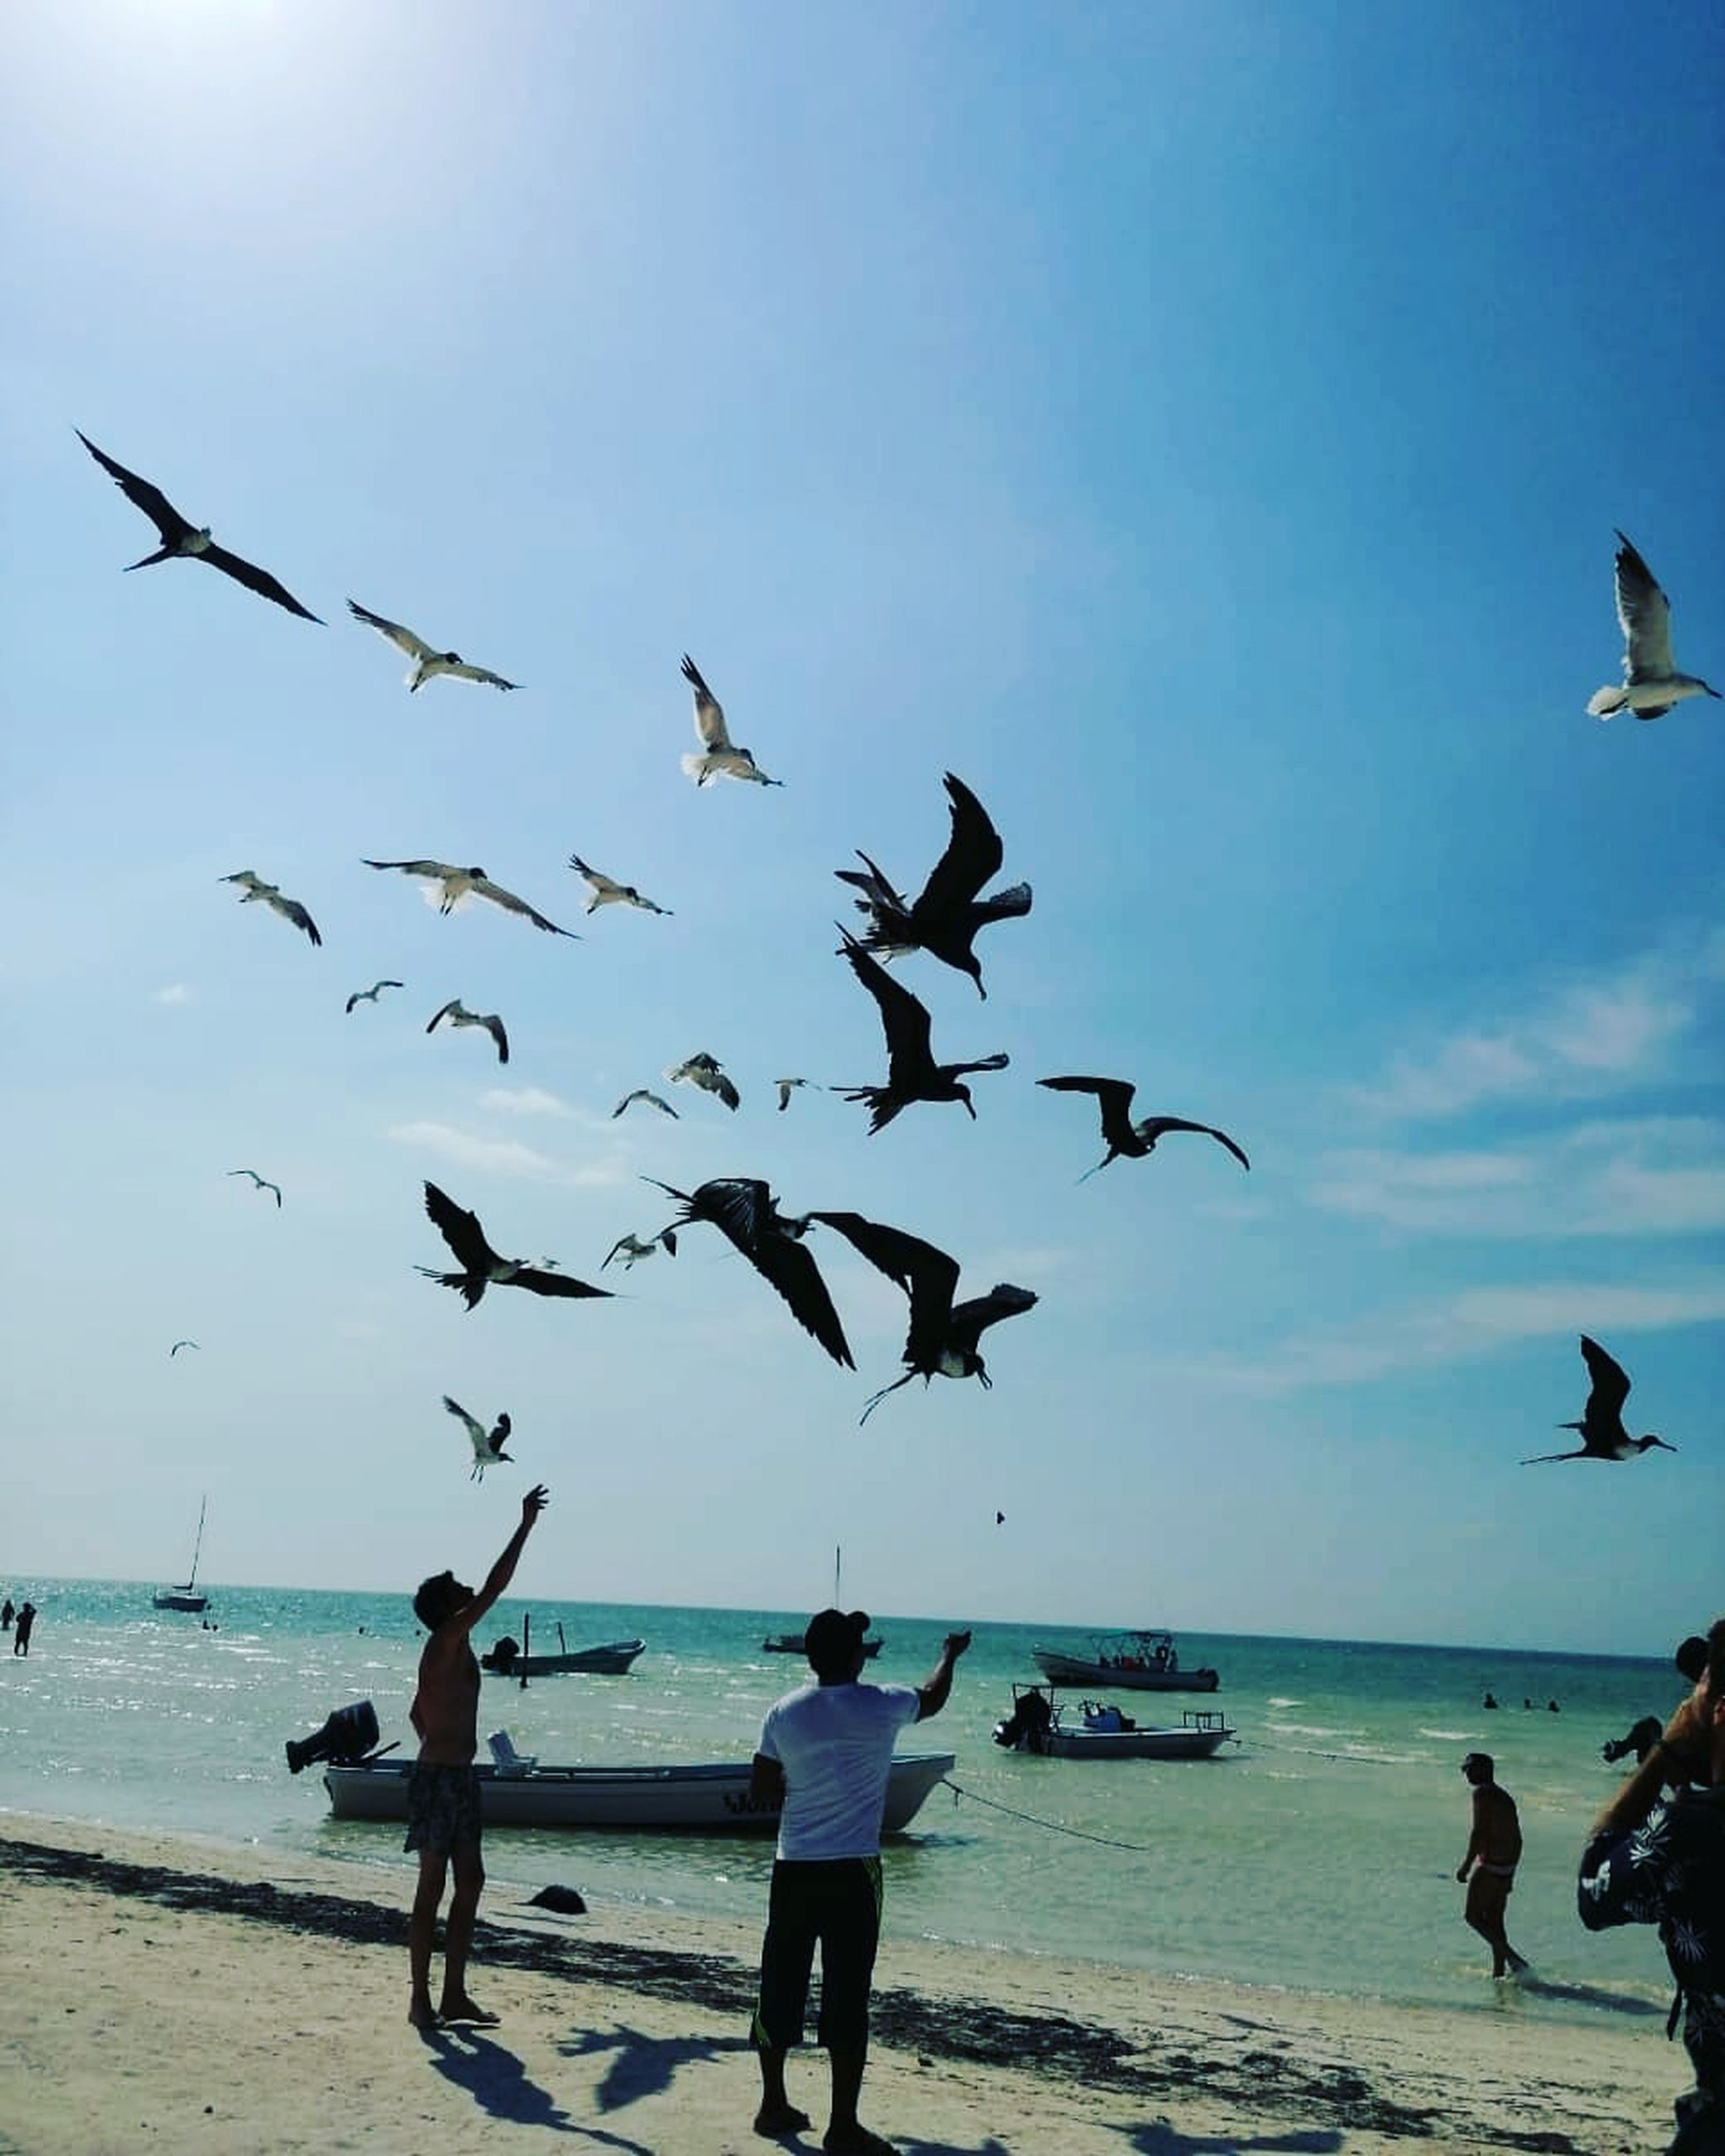 water, sky, sea, flying, group of animals, vertebrate, animal themes, animals in the wild, animal, bird, beach, animal wildlife, large group of animals, land, horizon over water, nature, horizon, group of people, real people, flock of birds, seagull